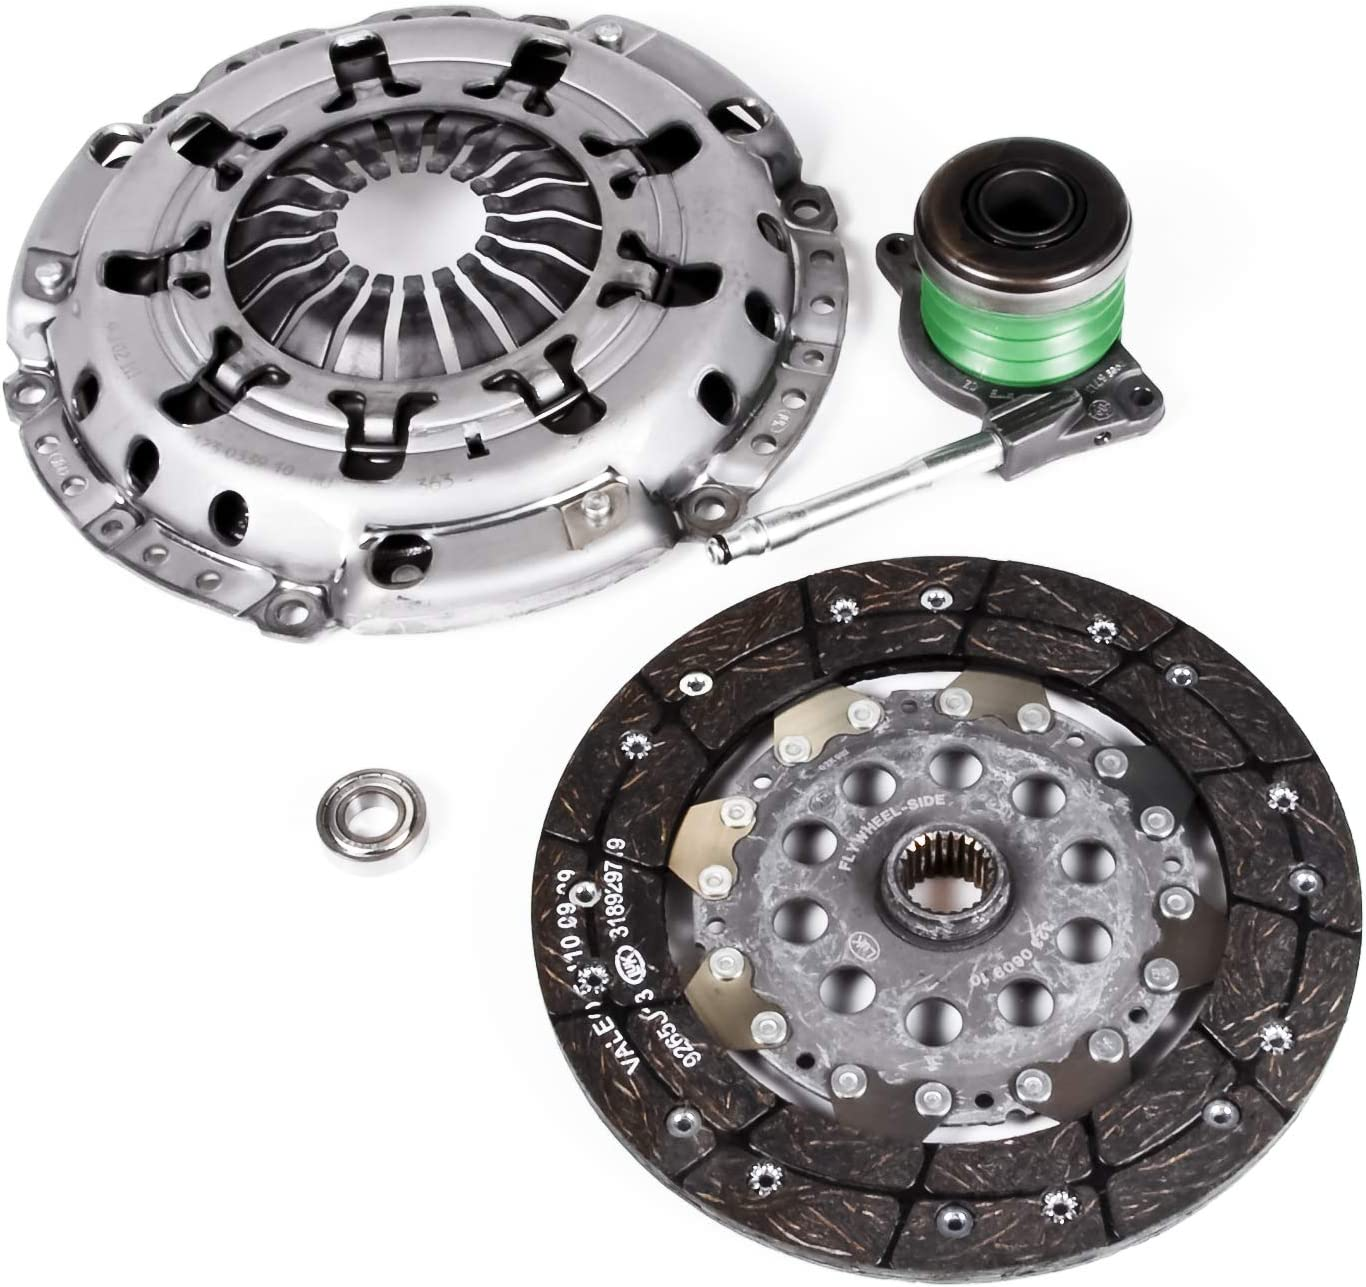 Schaeffler LuK RepSet 22-033 Dealing Super sale period limited full price reduction Kit Clutch Replacement OEM